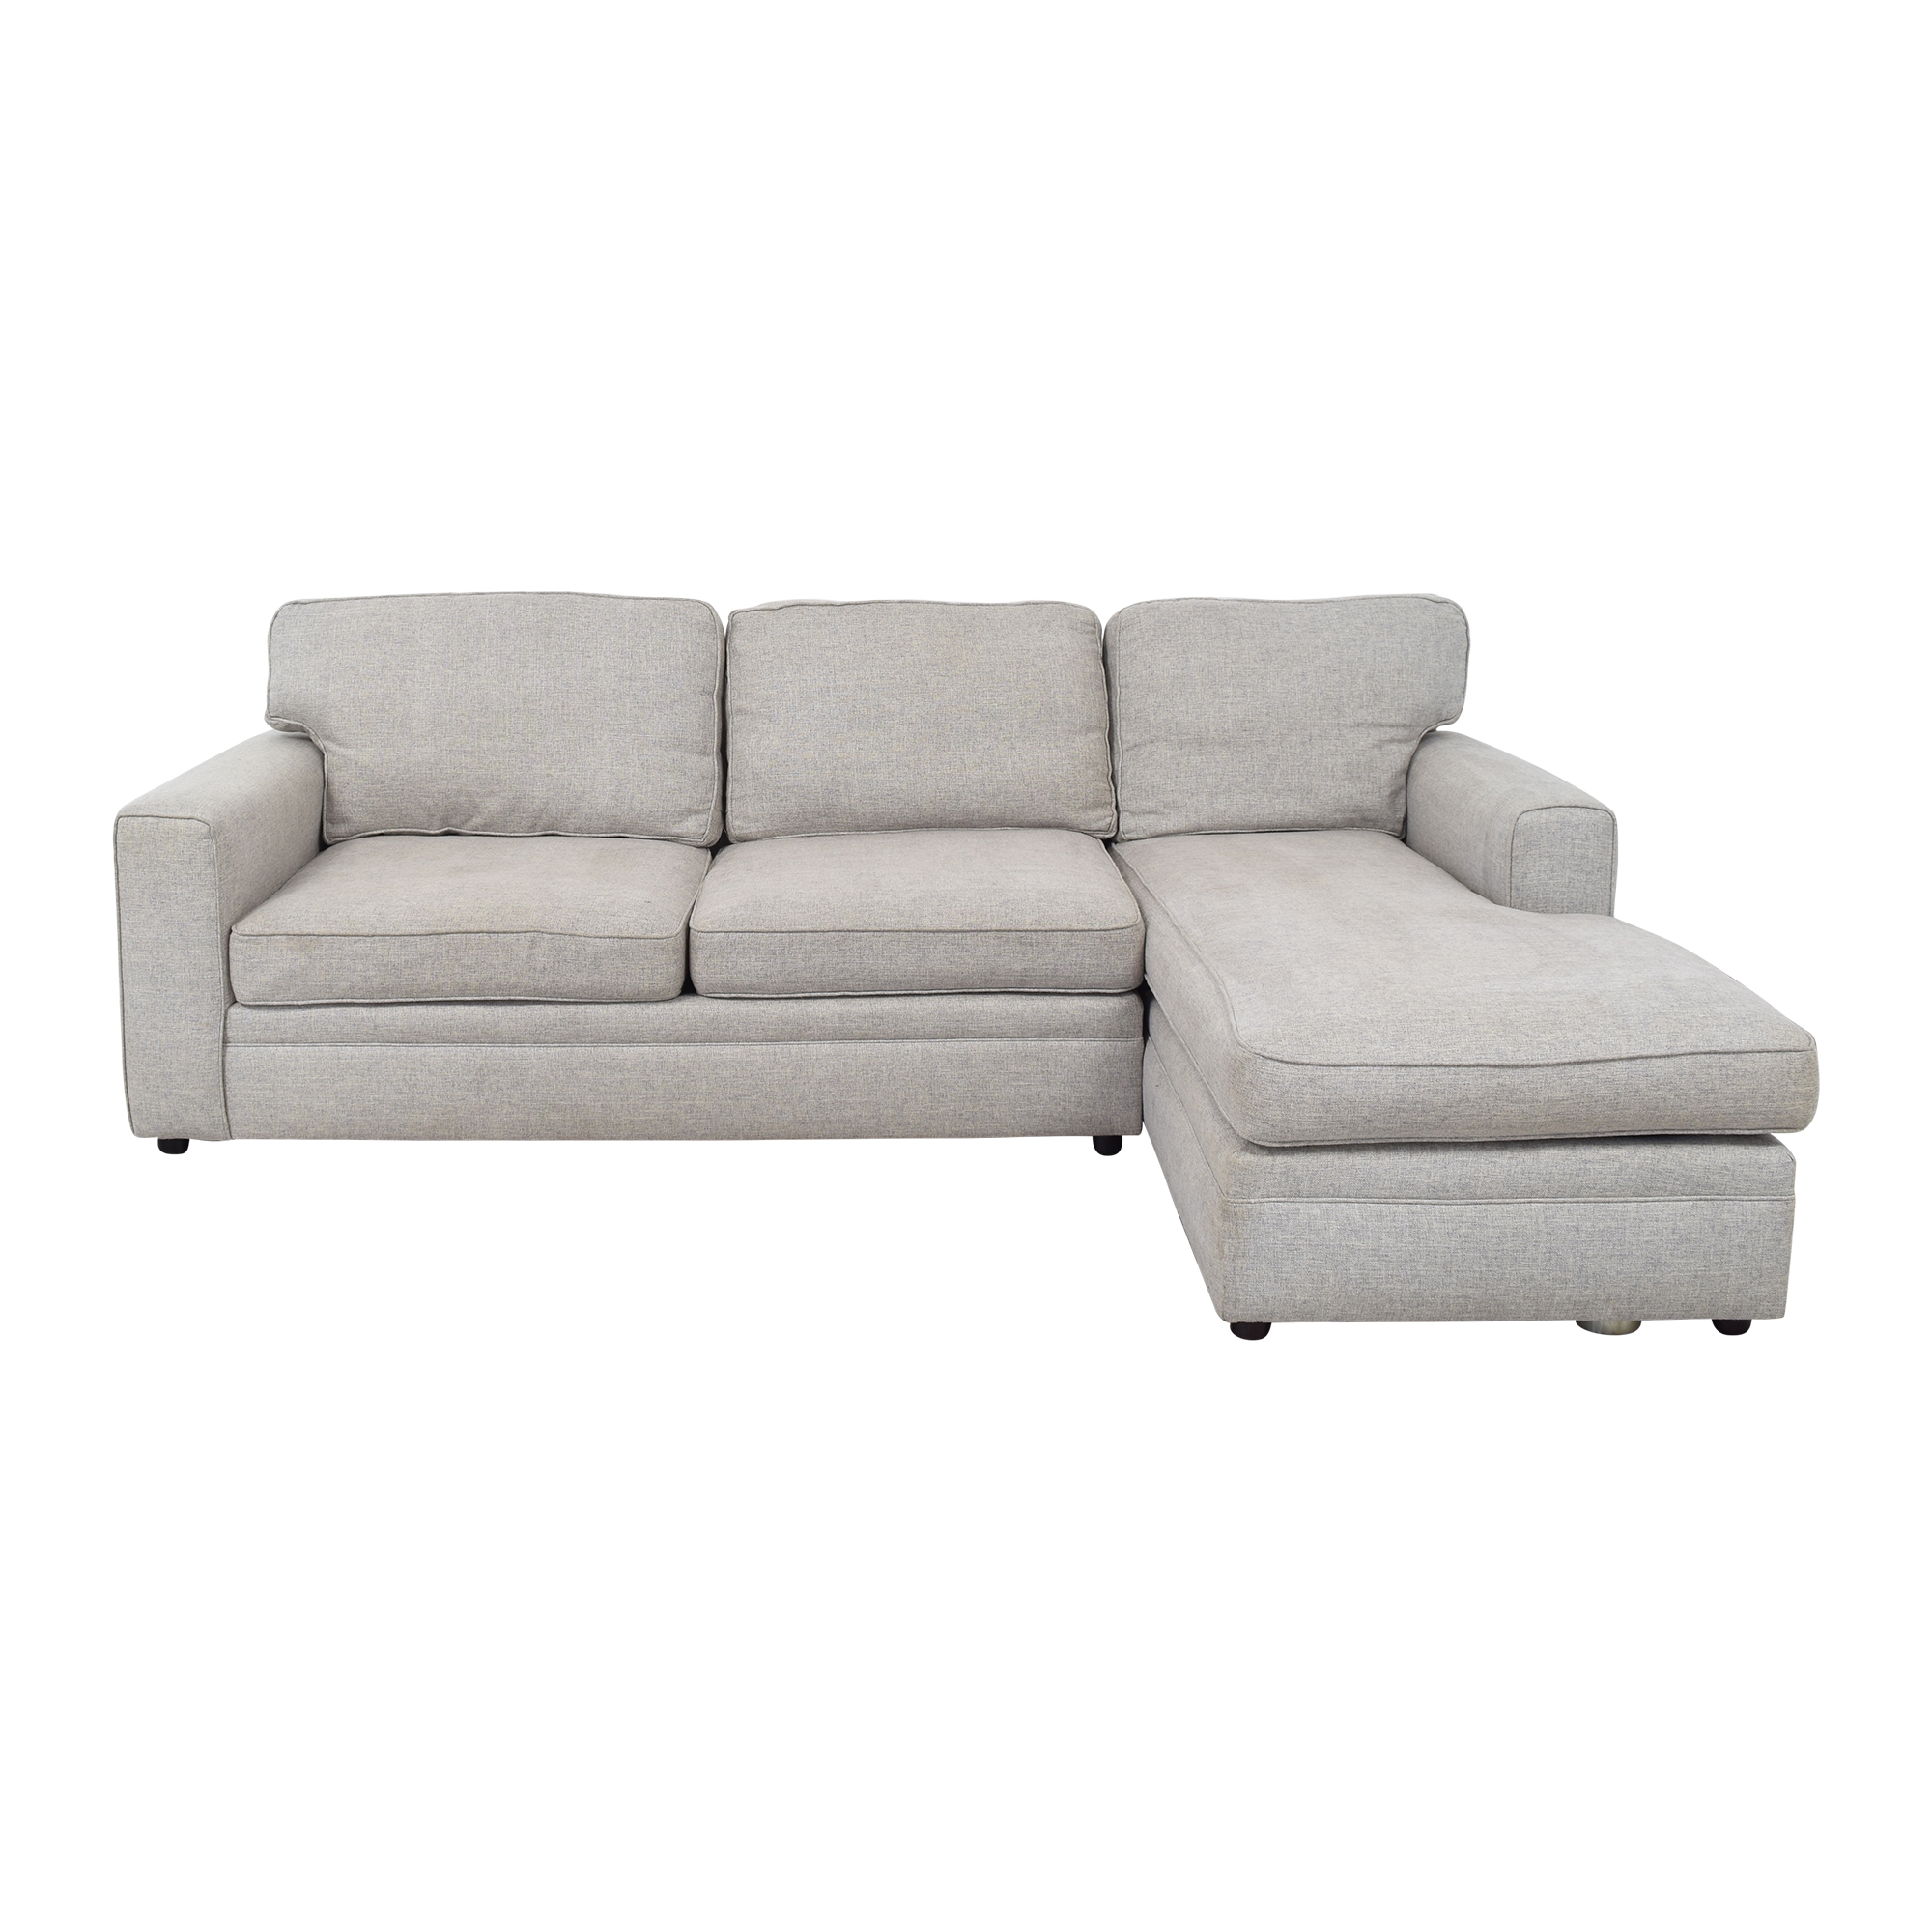 Pottery Barn Pottery Barn Pearce Square Arm Upholstered Chaise Sectional Sofa pa